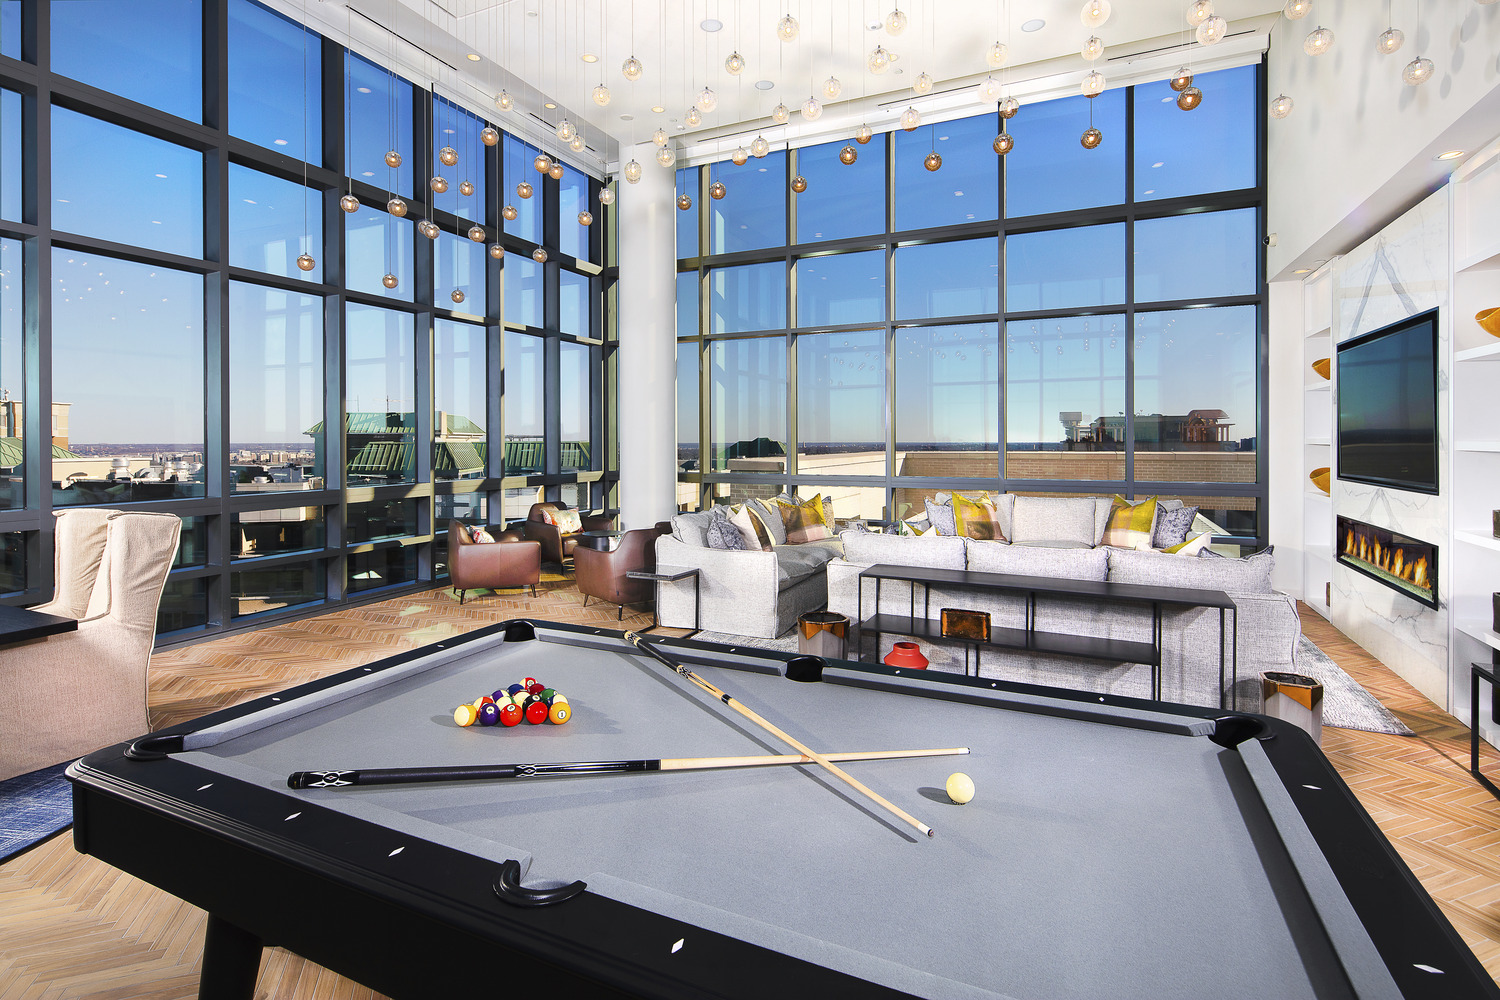 CBG builds J Sol, a 22-Story LEED® Gold Luxury Residential High-Rise in Arlington, VA - Image #2